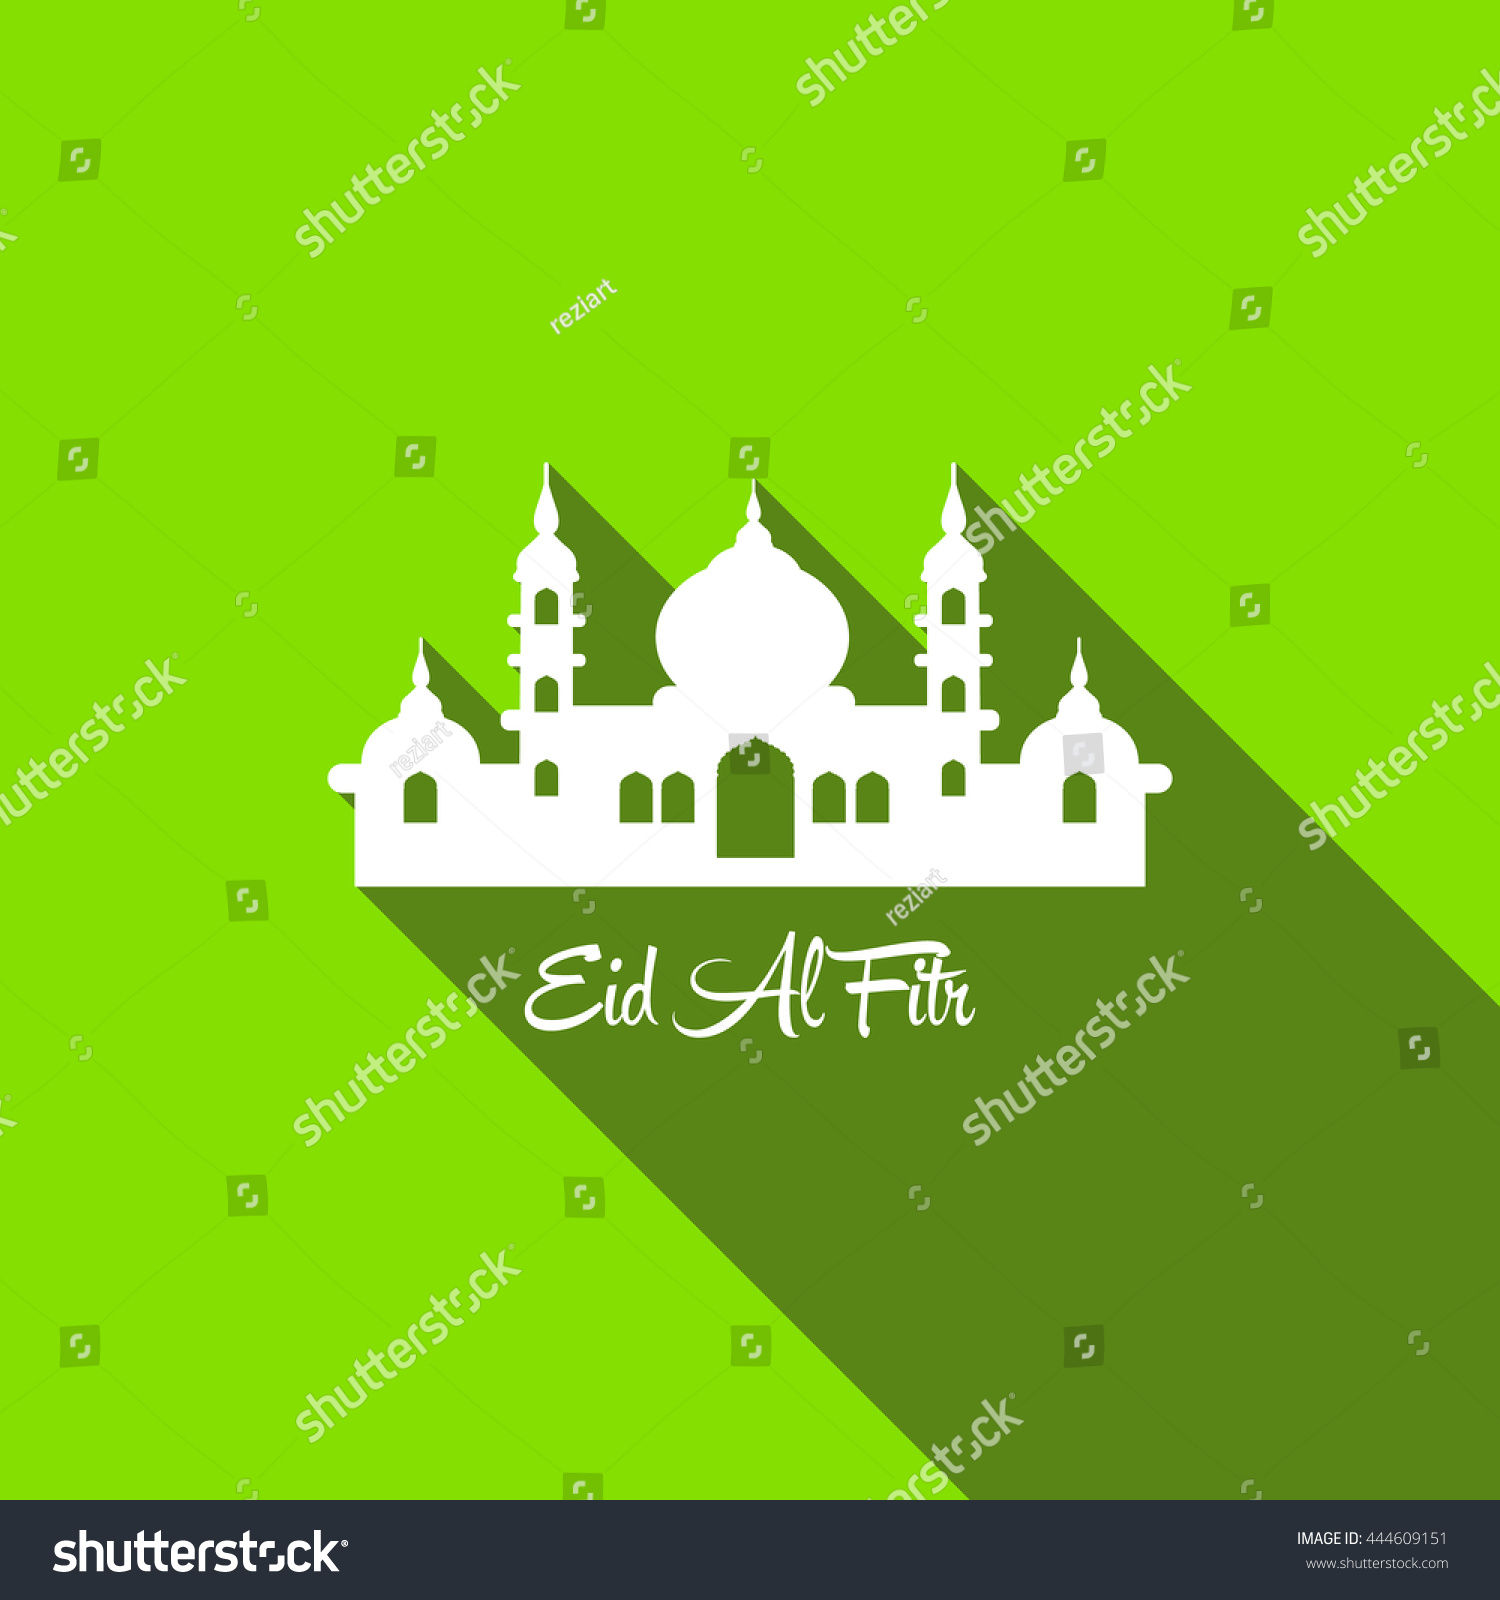 Amazing Simple Eid Al-Fitr Greeting - stock-vector-greeting-cards-illustration-ramadhan-ramadhan-kareem-eid-mubarak-eid-al-fitr-eid-al-adha-eid-444609151  Perfect Image Reference_318795 .jpg